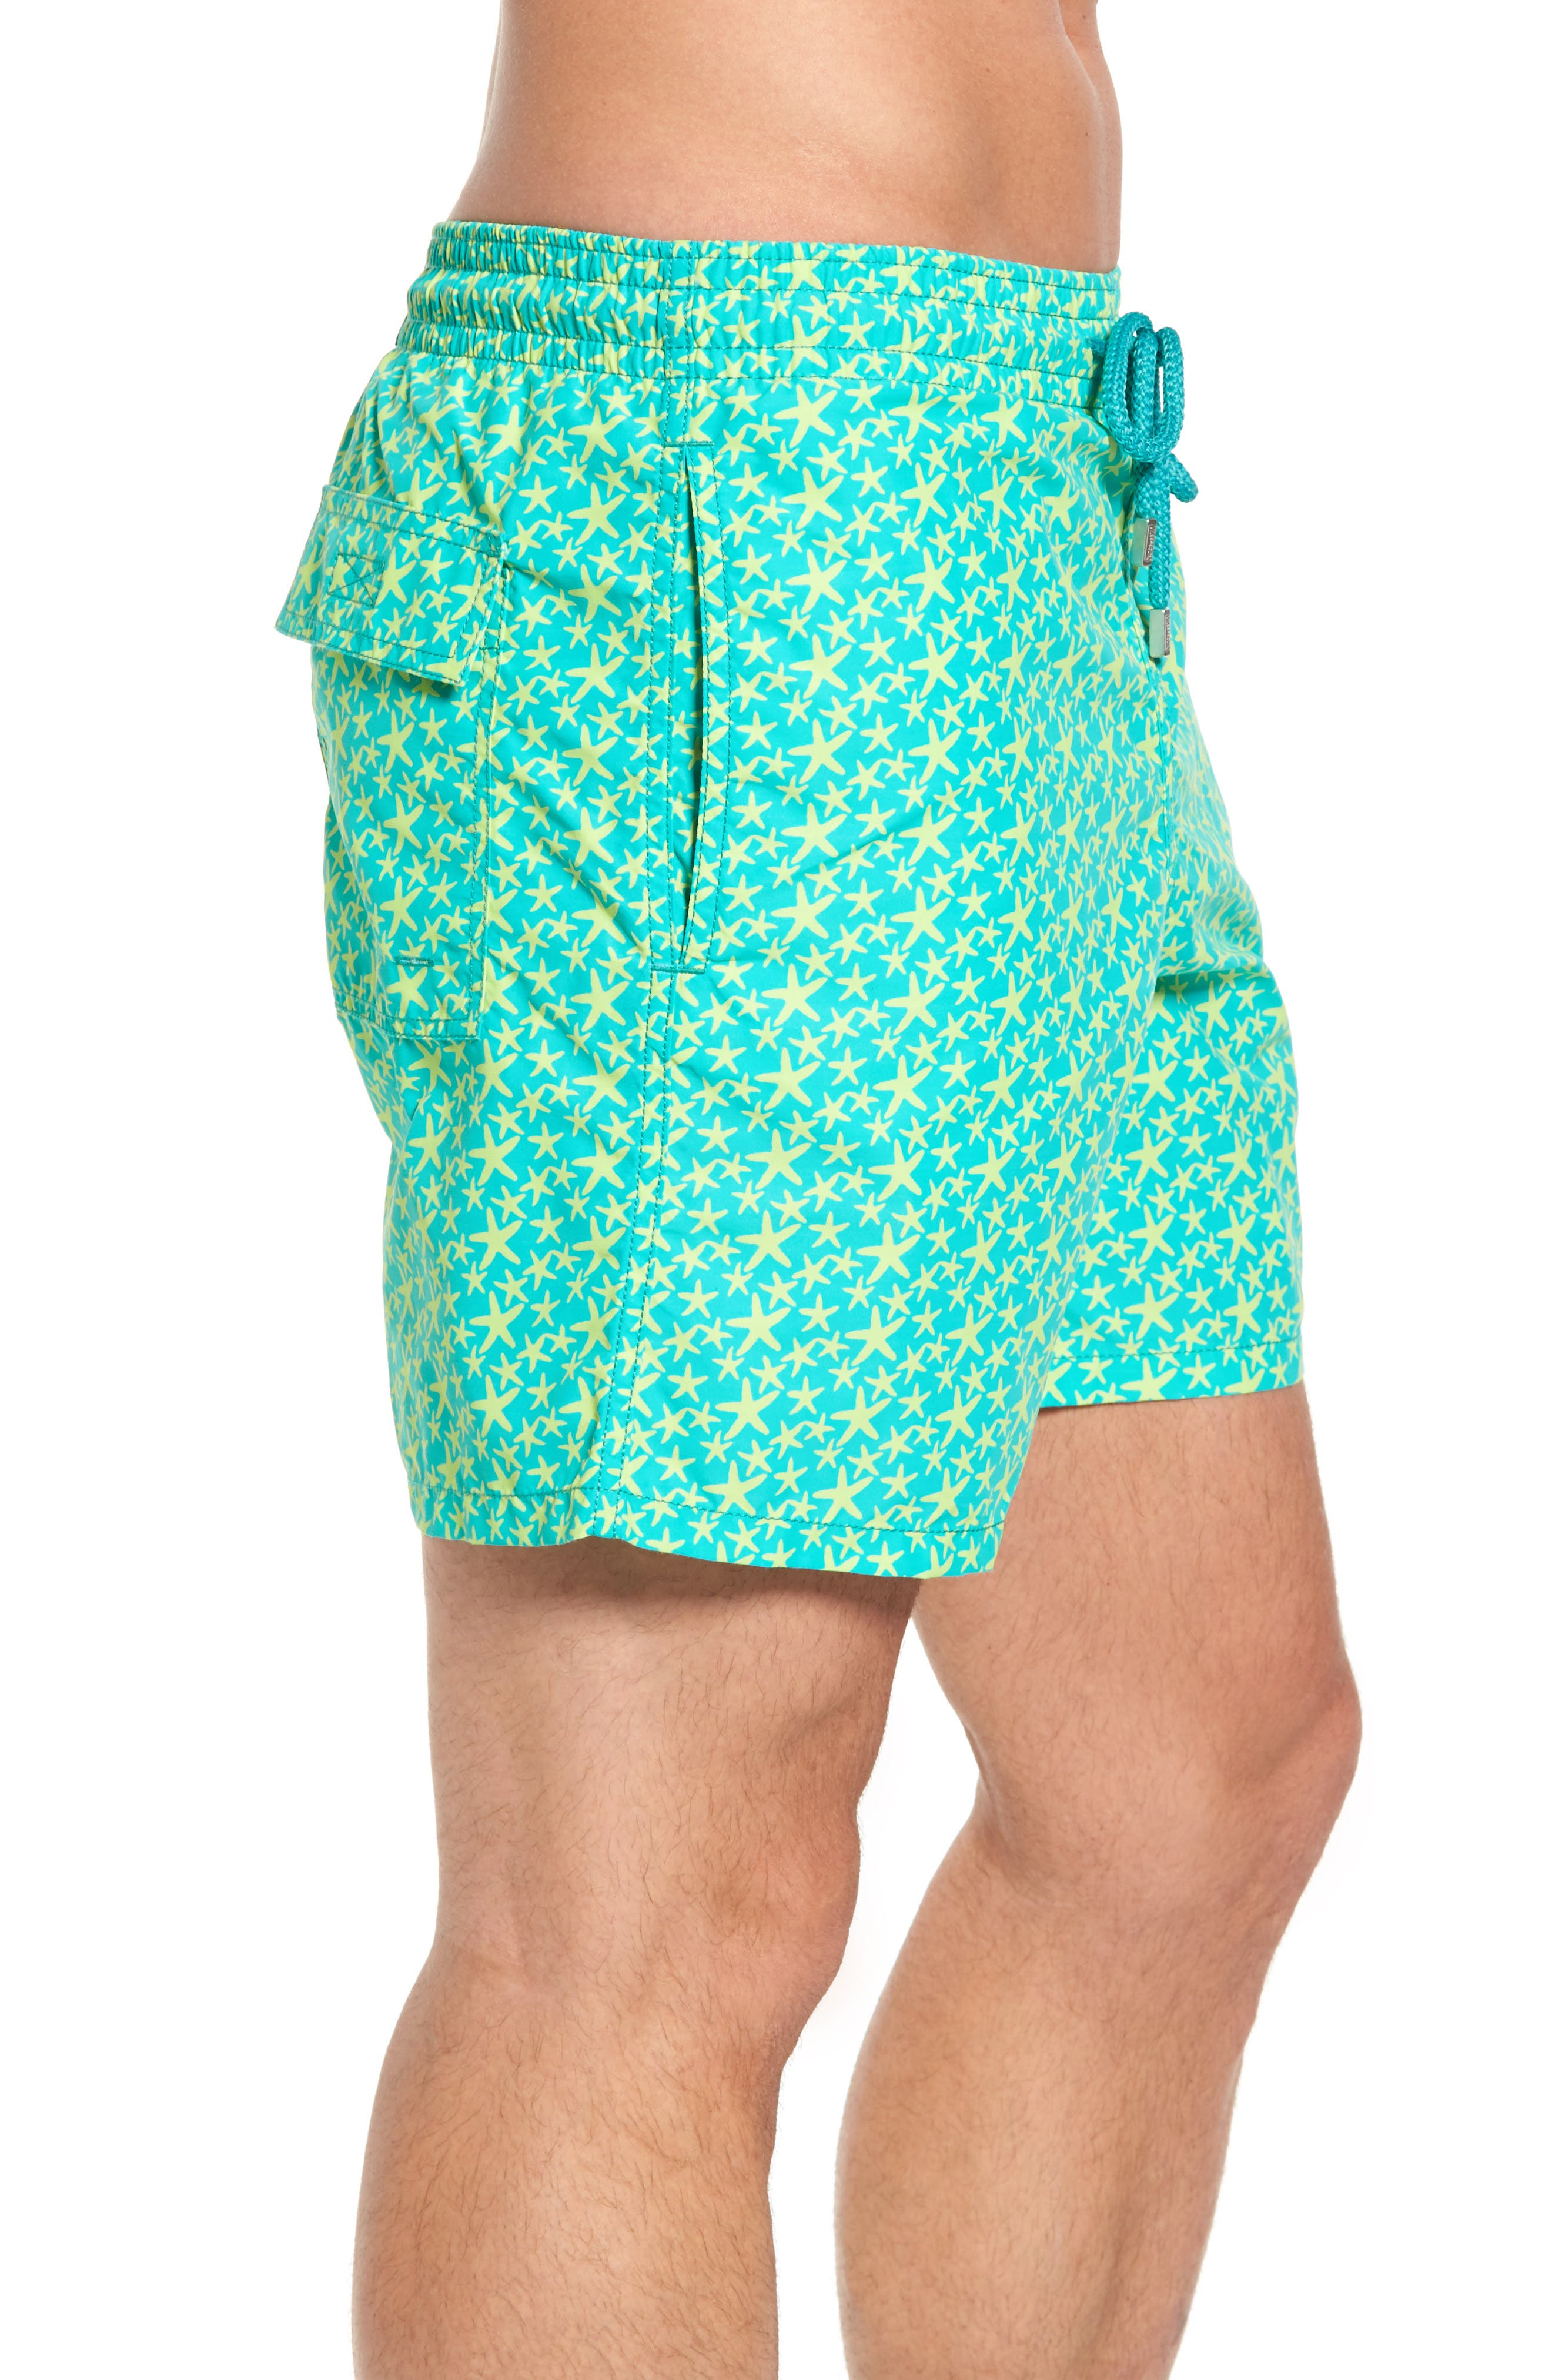 Micro Starlets Swim Trunks,                             Alternate thumbnail 3, color,                             348